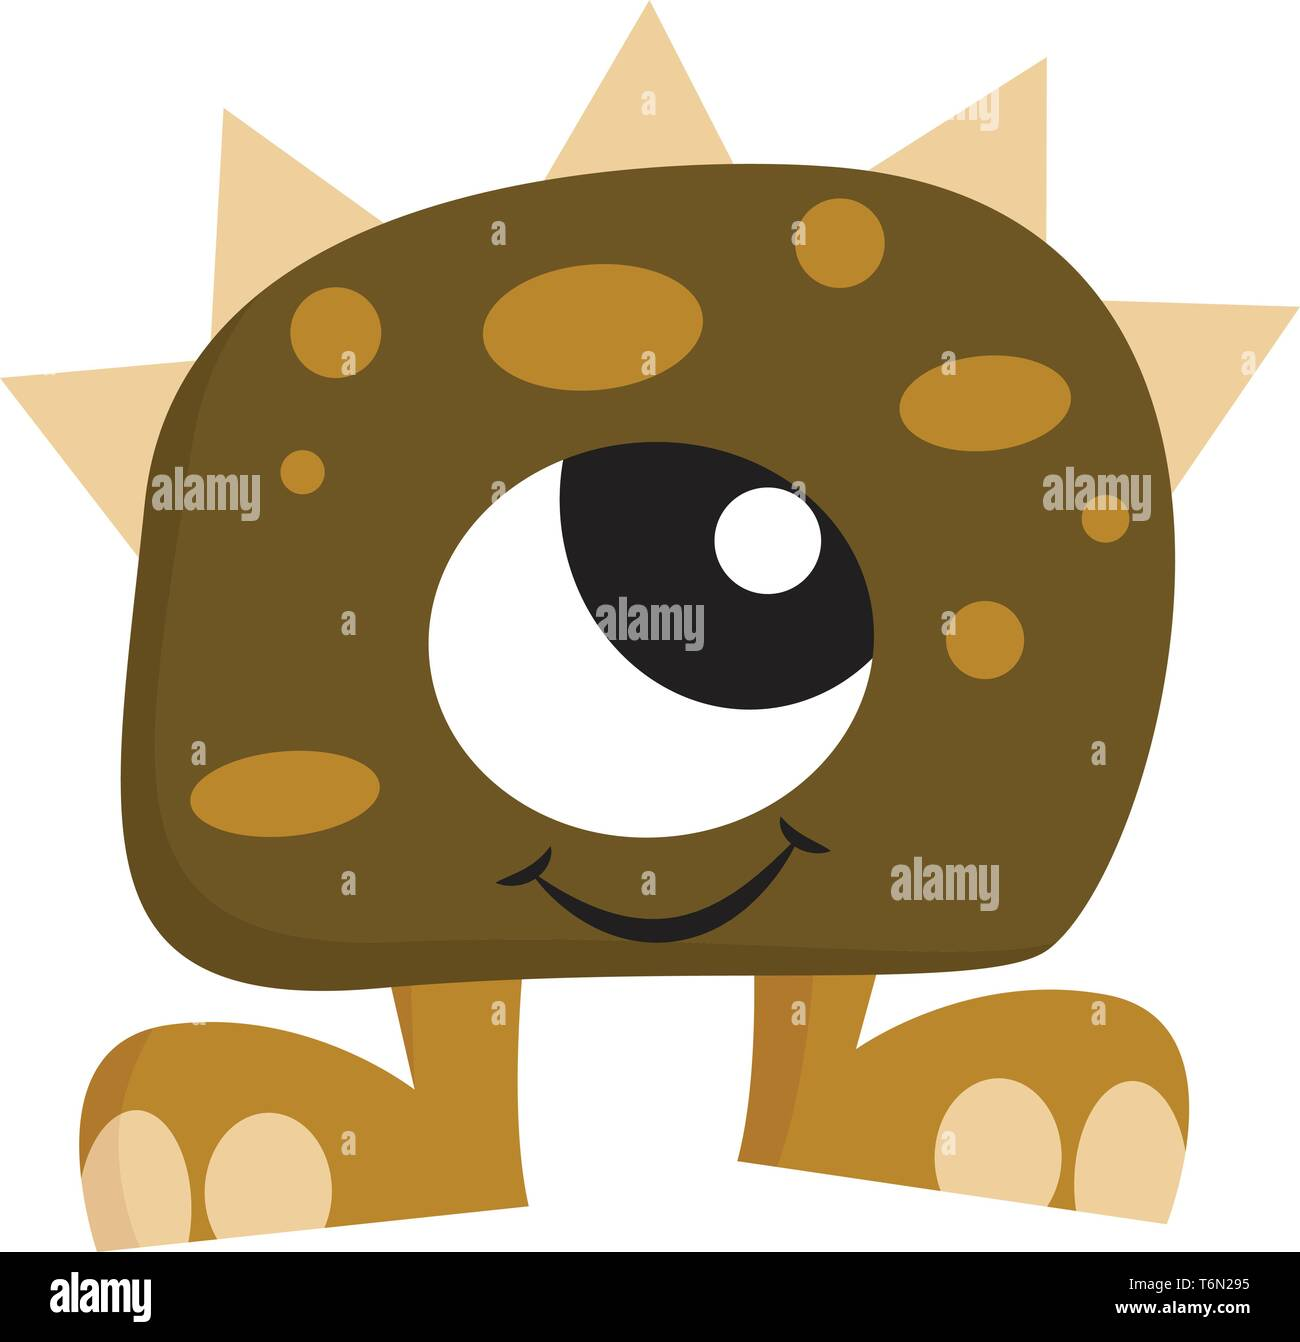 hight resolution of clipart of green colored monster with one big eye spines on its body two legs is smiling while standing vector color drawing or illustration